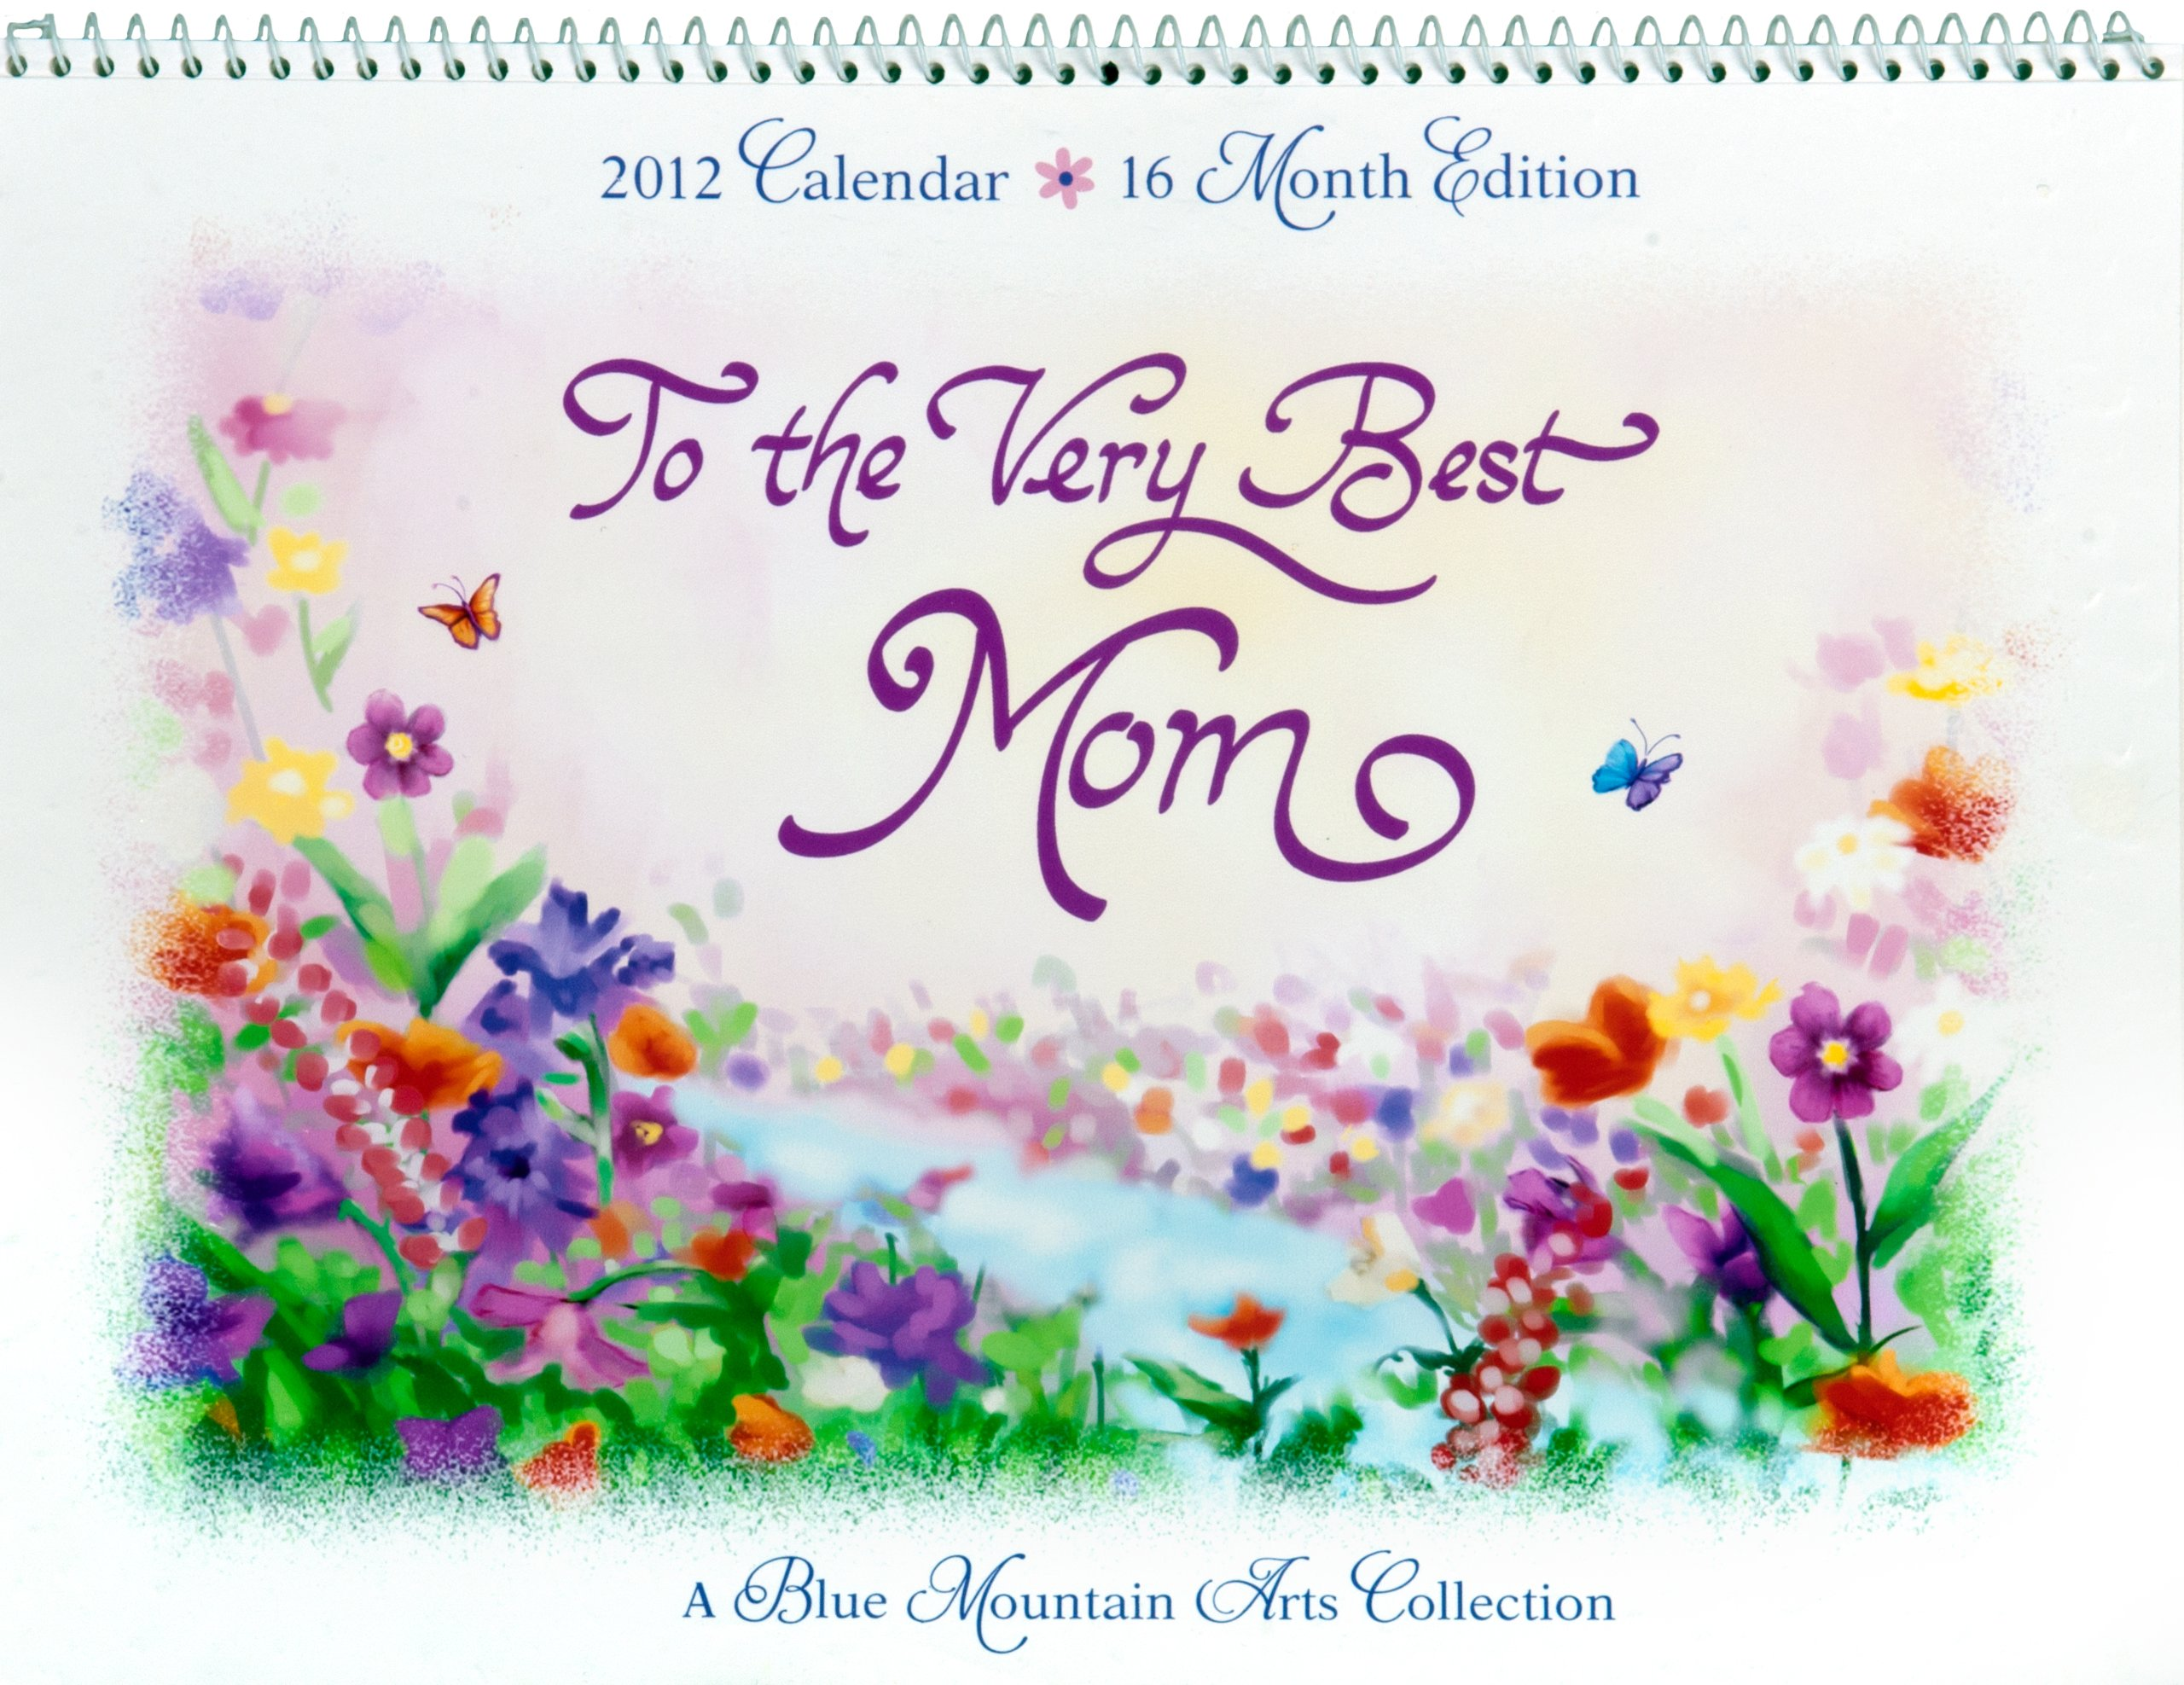 To The Very Best Mom 2012 Calendar Blue Mountain Arts Collection